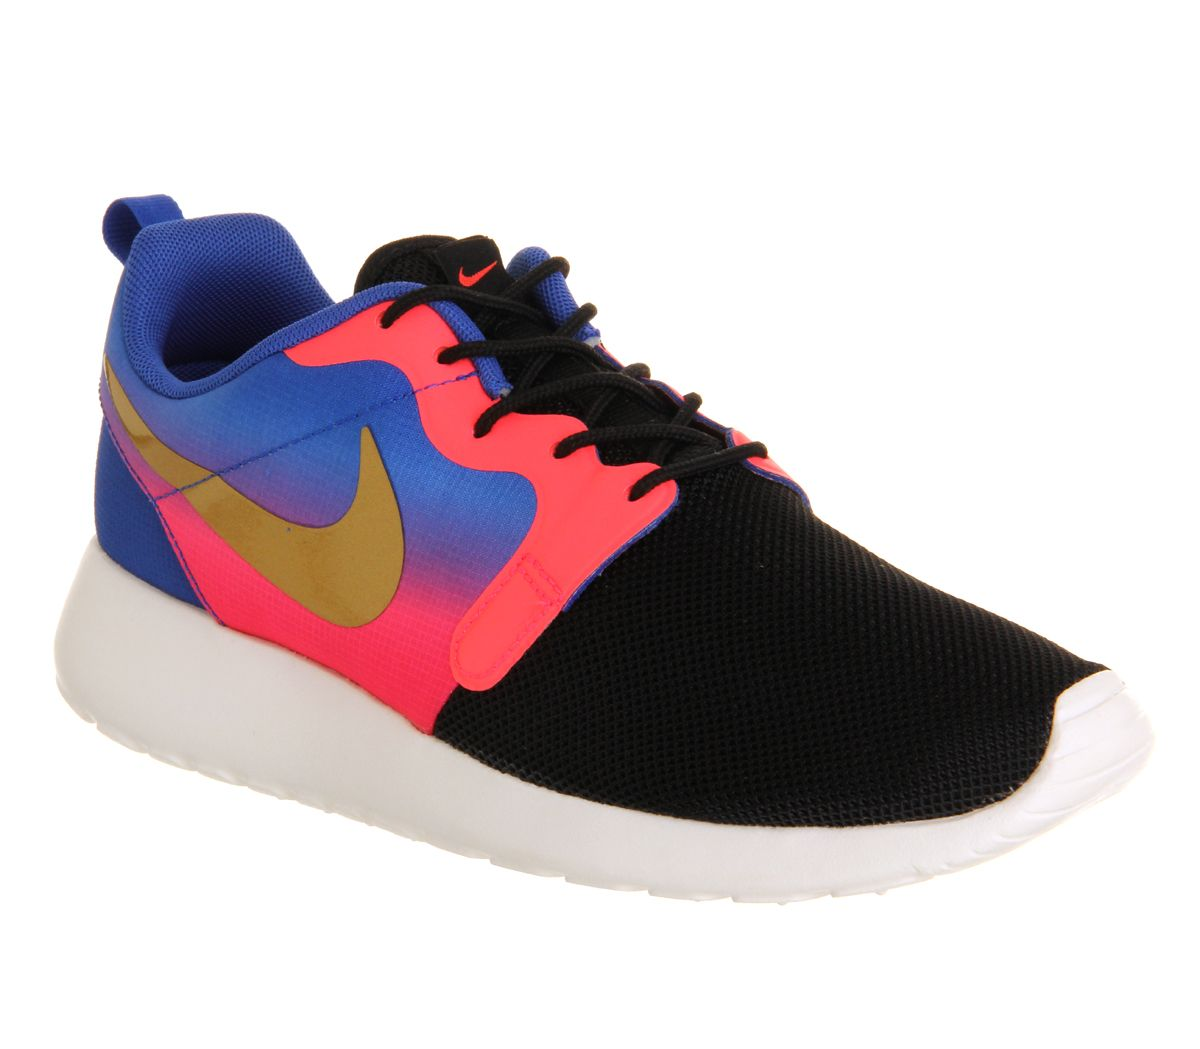 new concept b2516 bfde4 Nike Roshe Run Hyp Mercurial Black Gold Hyper Punch Jaquard Qs - Hers  trainers